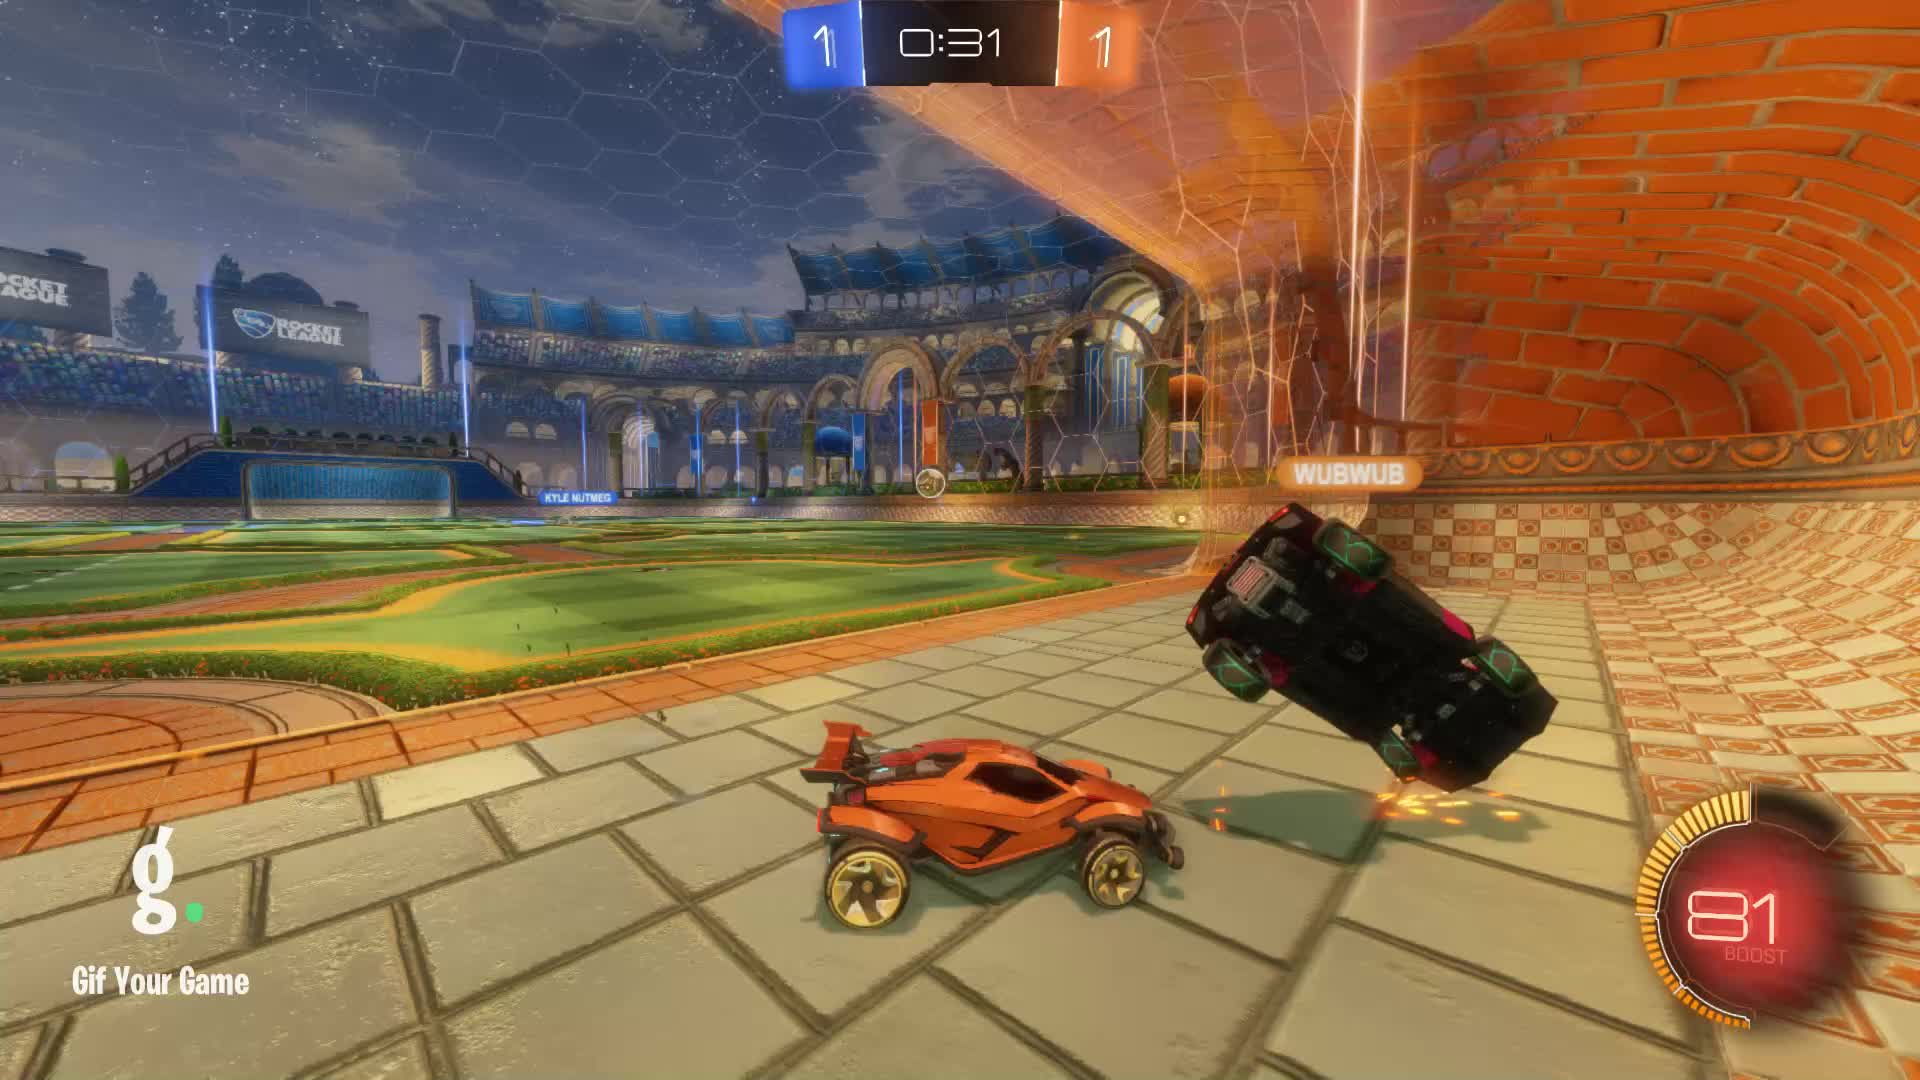 Gif Your Game, GifYourGame, ItWas...Justified, Rocket League, RocketLeague, Save, Save 10: ItWas...Justified GIFs